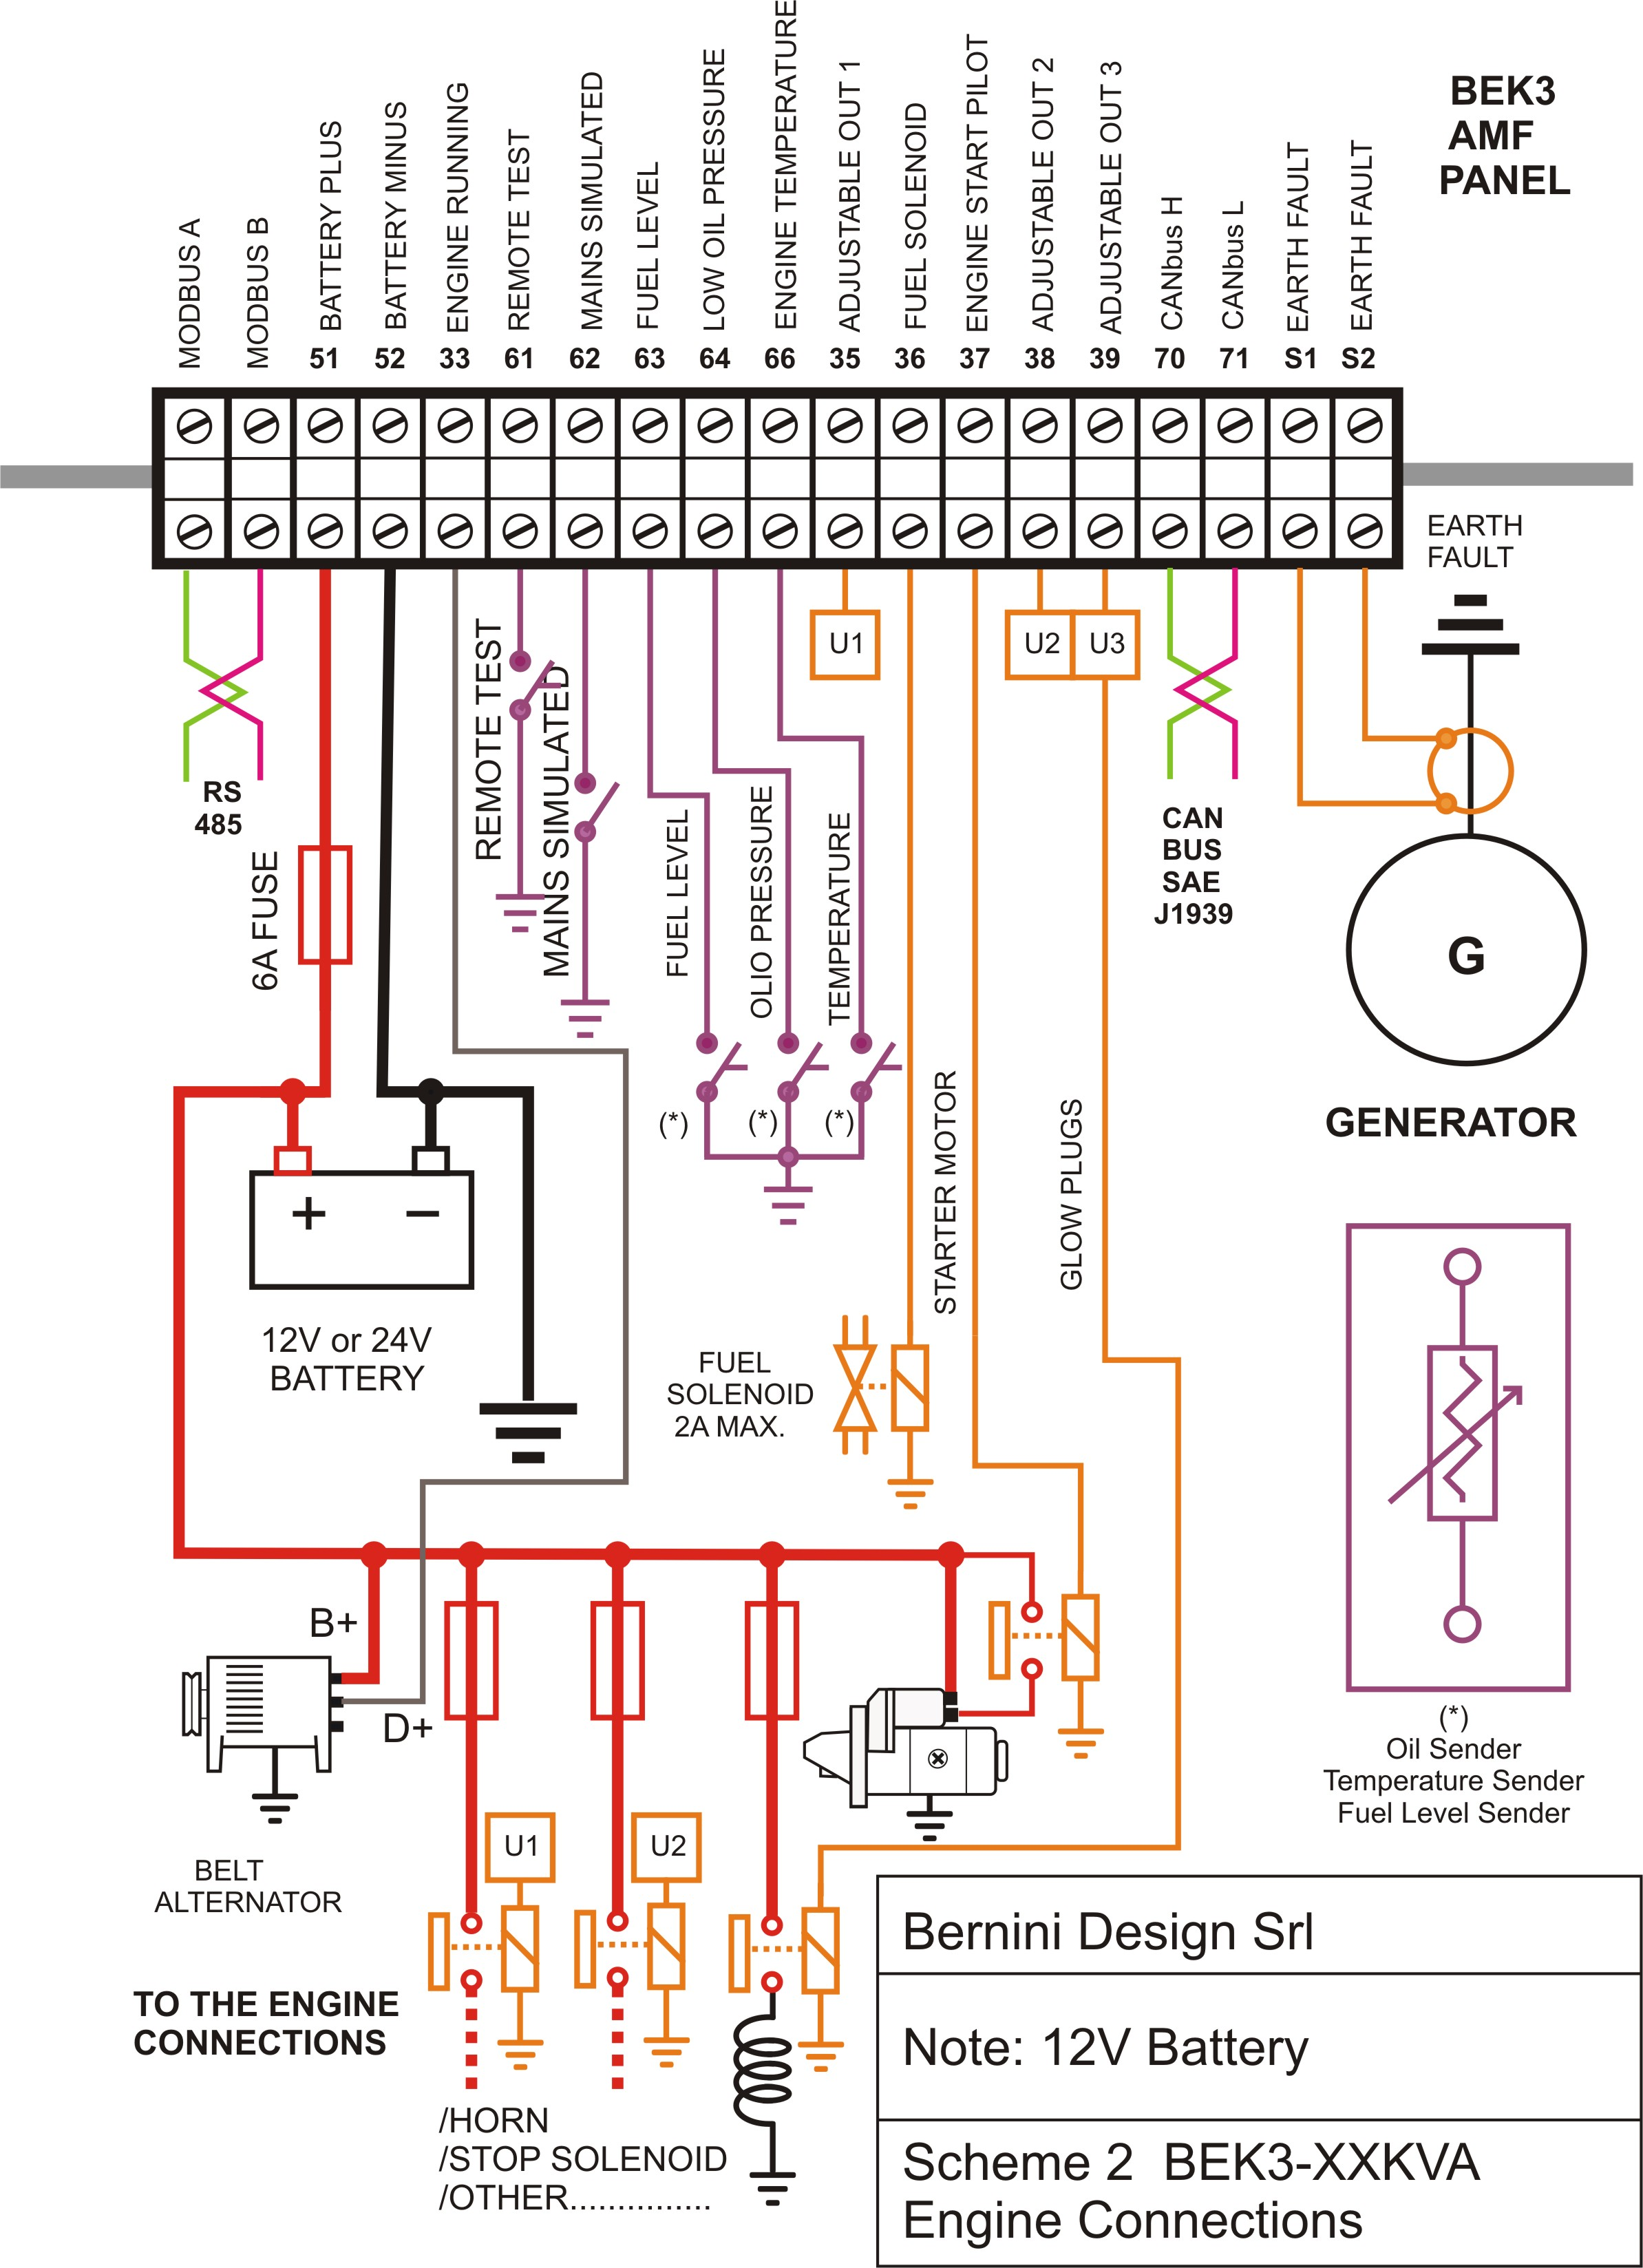 Diesel Generator Control Panel Wiring Diagram Engine Connections1 auto mains failure control panel genset controller controller wire diagram for 3246e2 lift at webbmarketing.co